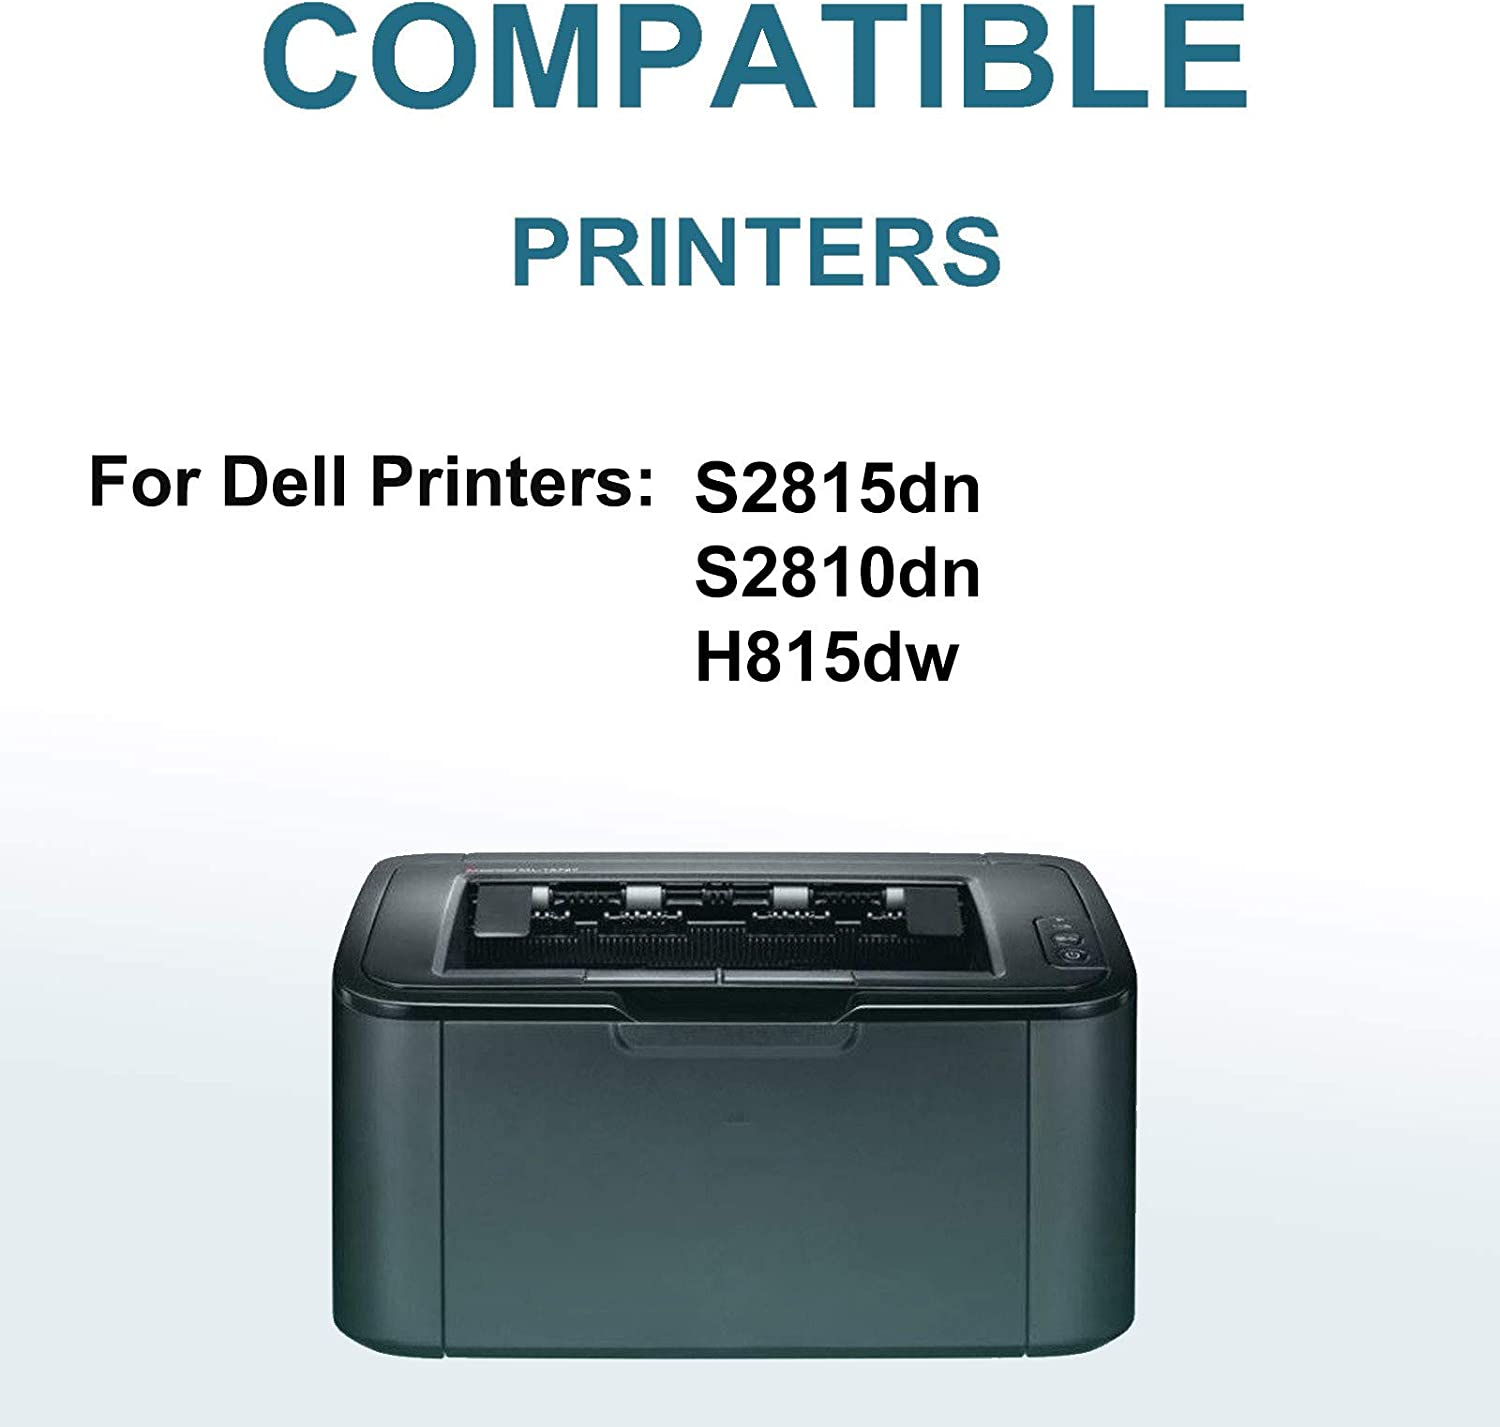 8-Pack Compatible High Capacity H815dw Printer Toner Cartridge Replacement for Dell 47GMH Printer Cartridge (Black)